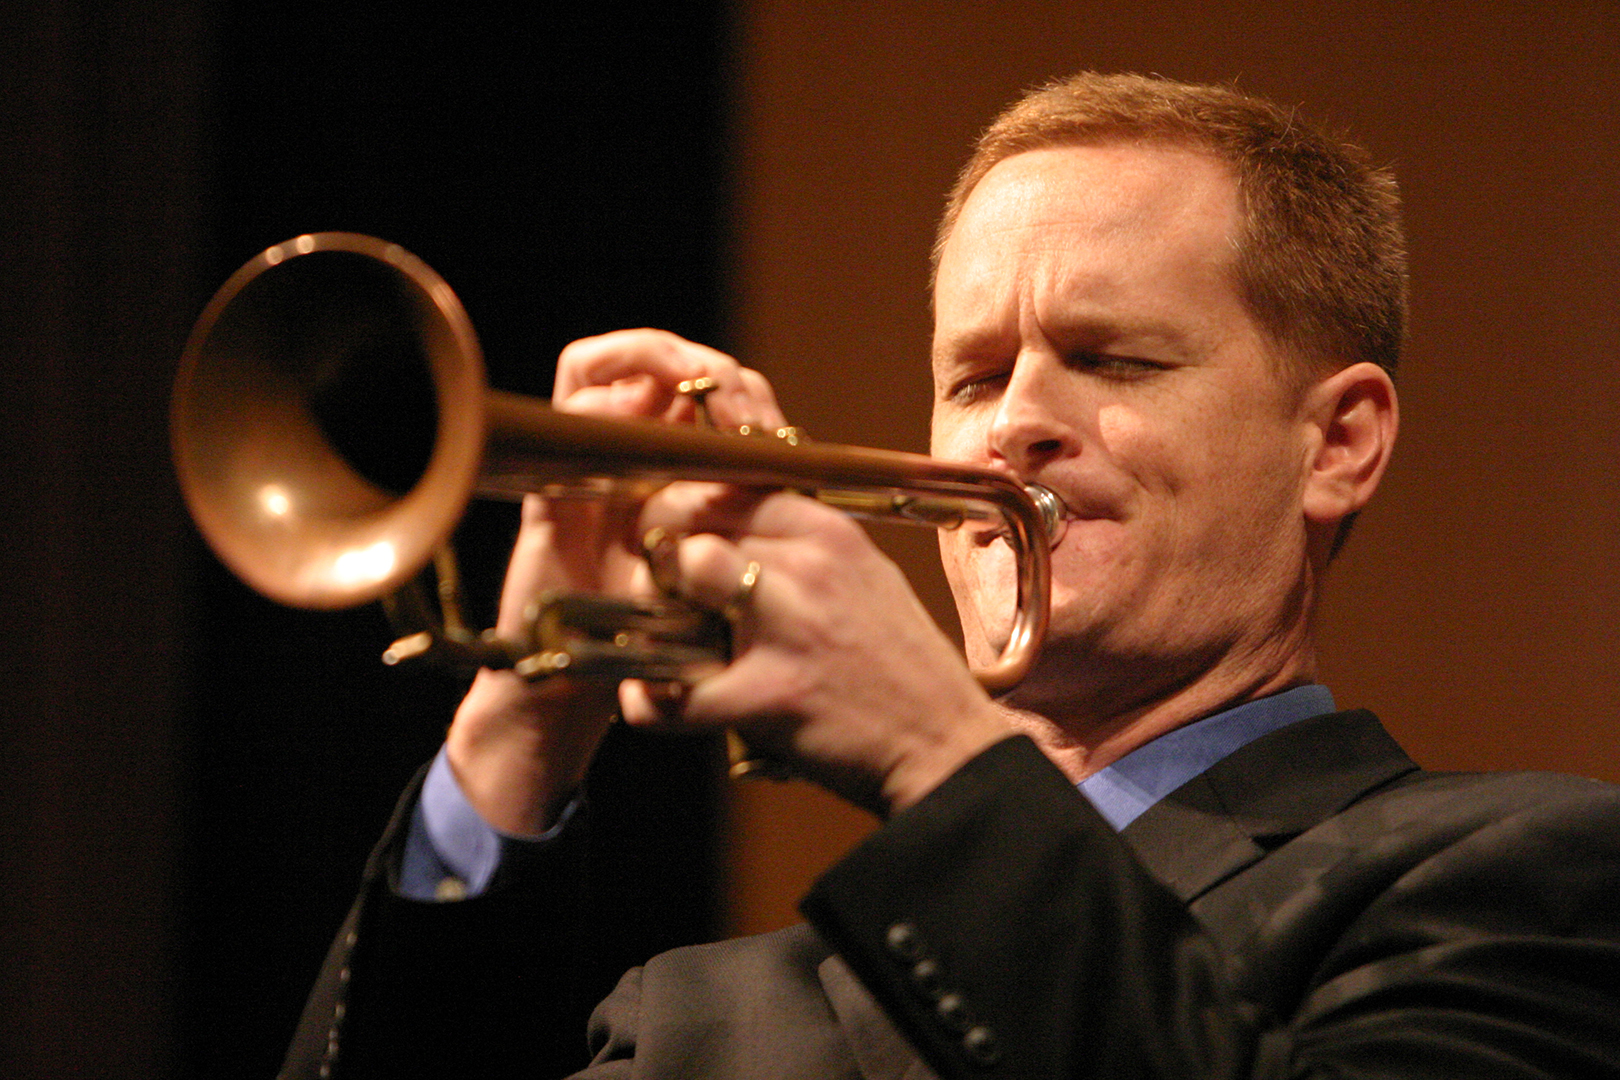 December's First Tuesday Concert to Feature Renowned Trumpet Player Graham Breedlove with UE Jazz Ensemble